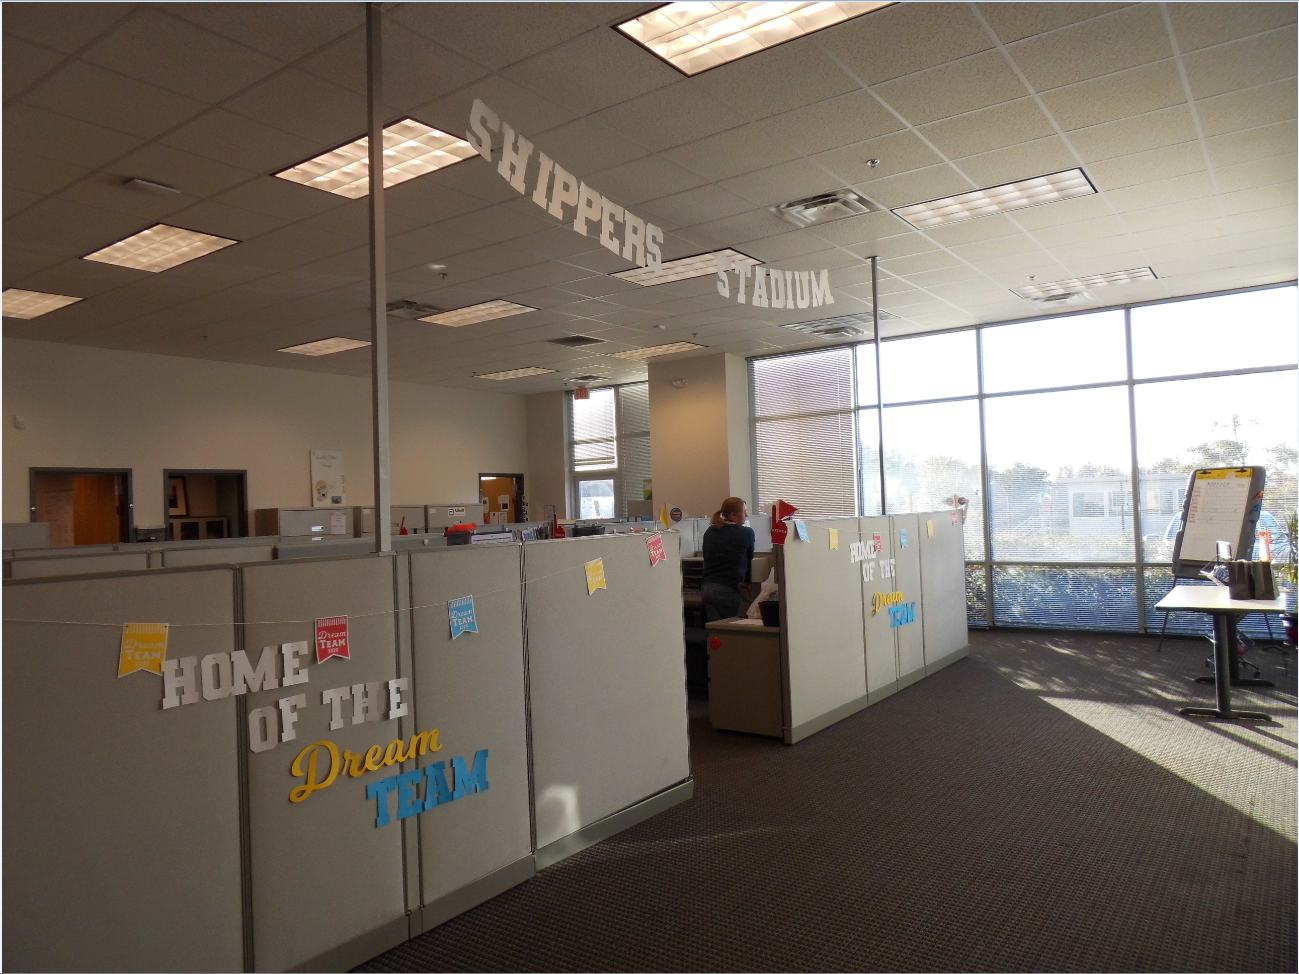 Austell associates decorated their cubicles Dream Team style